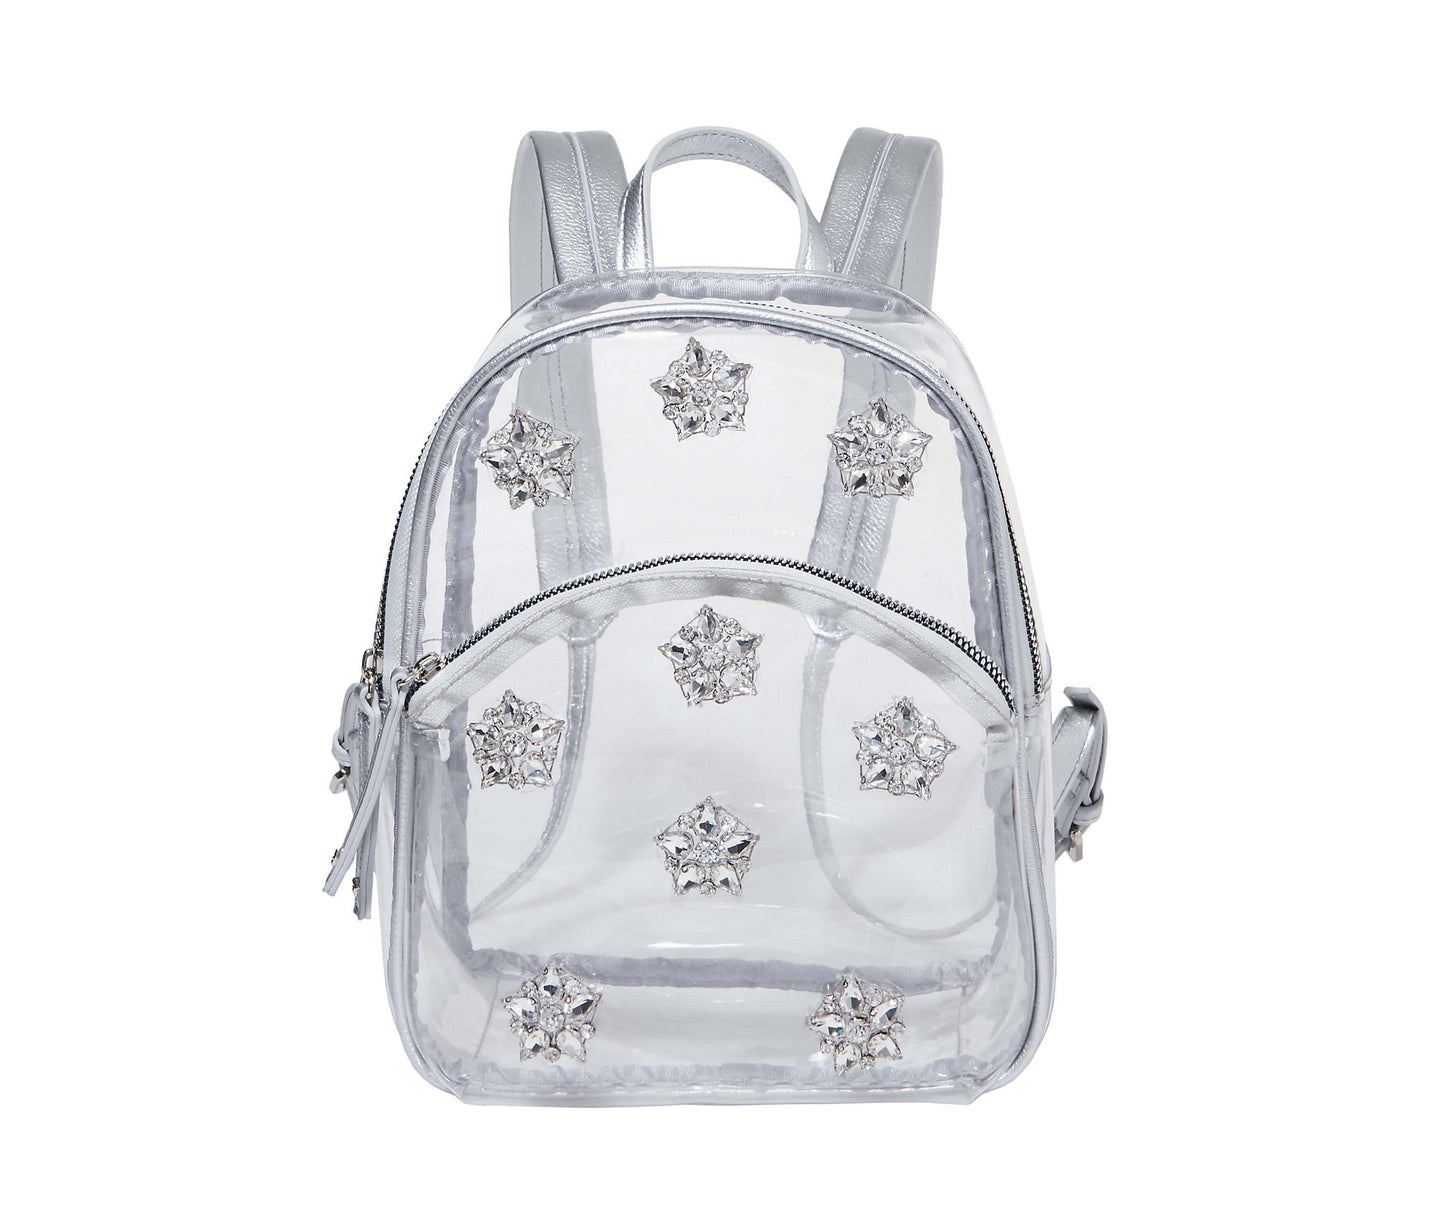 IF THE BAG FITS MINI BACKPACK CLEAR - HANDBAGS - Betsey Johnson